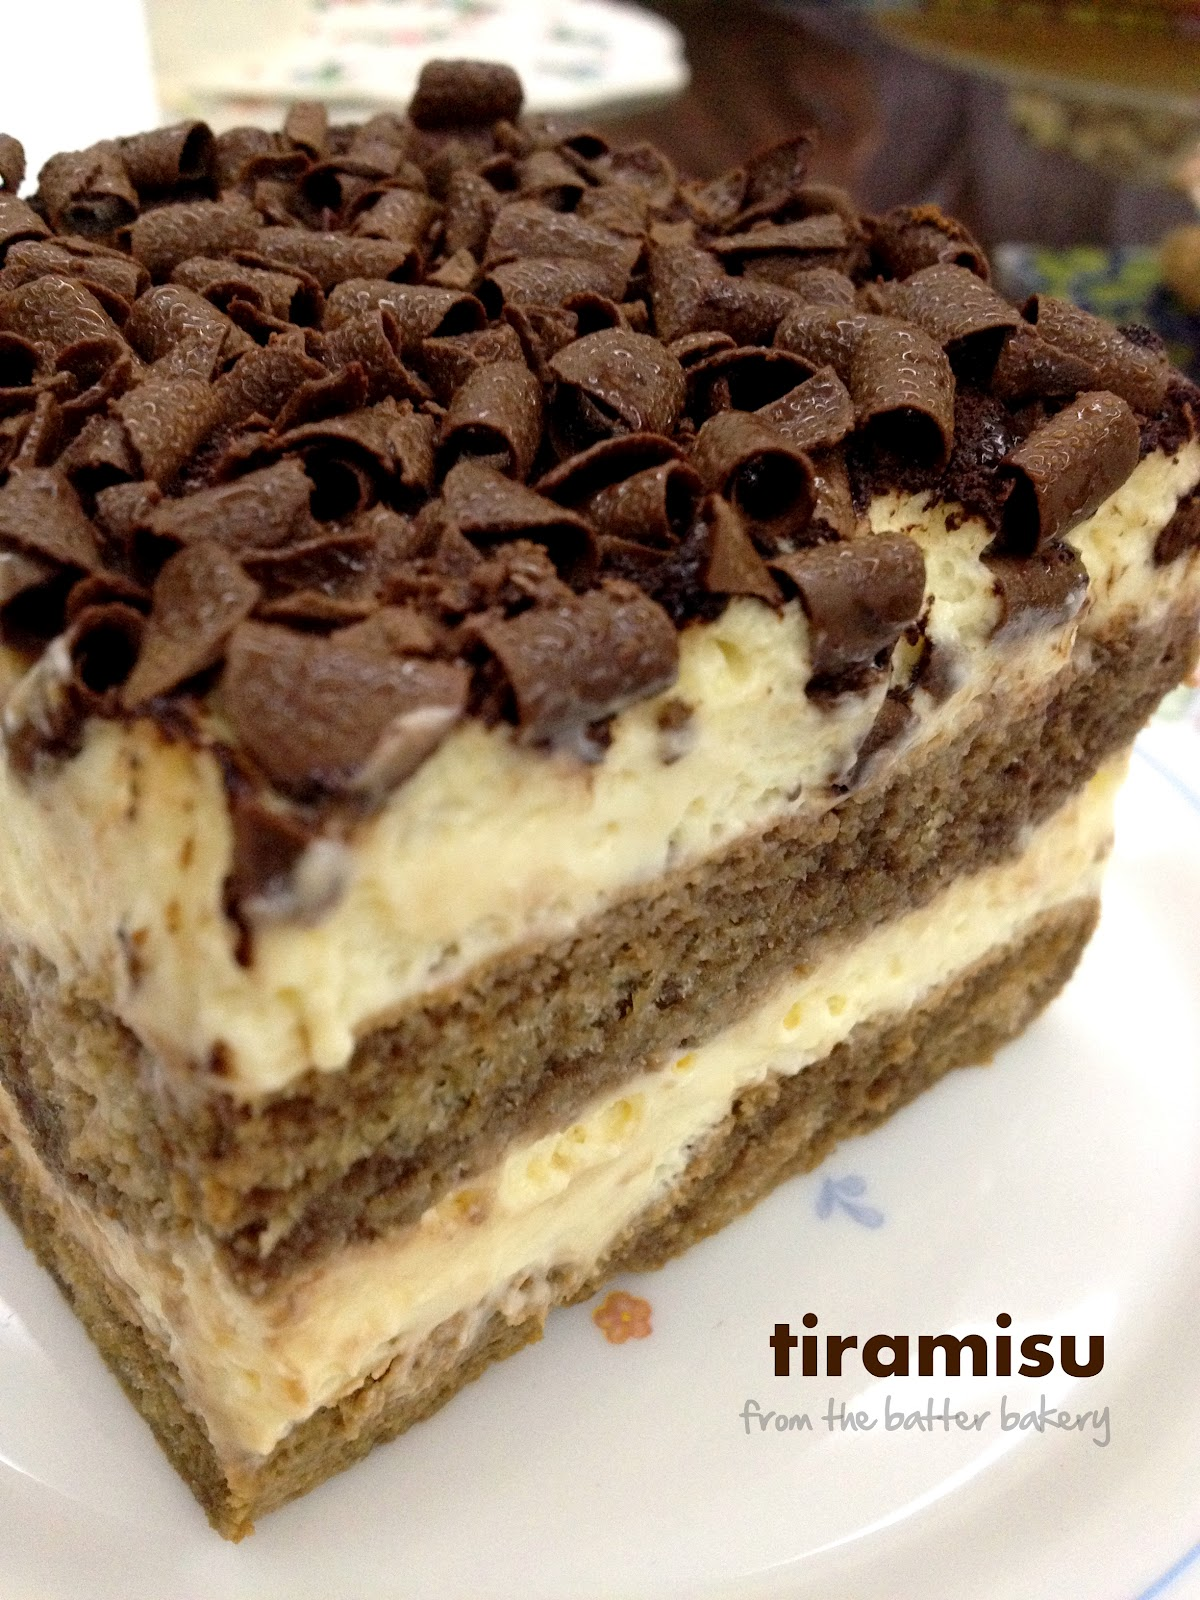 absolutely love love love tiramisu - the soft moist cake with layers ...